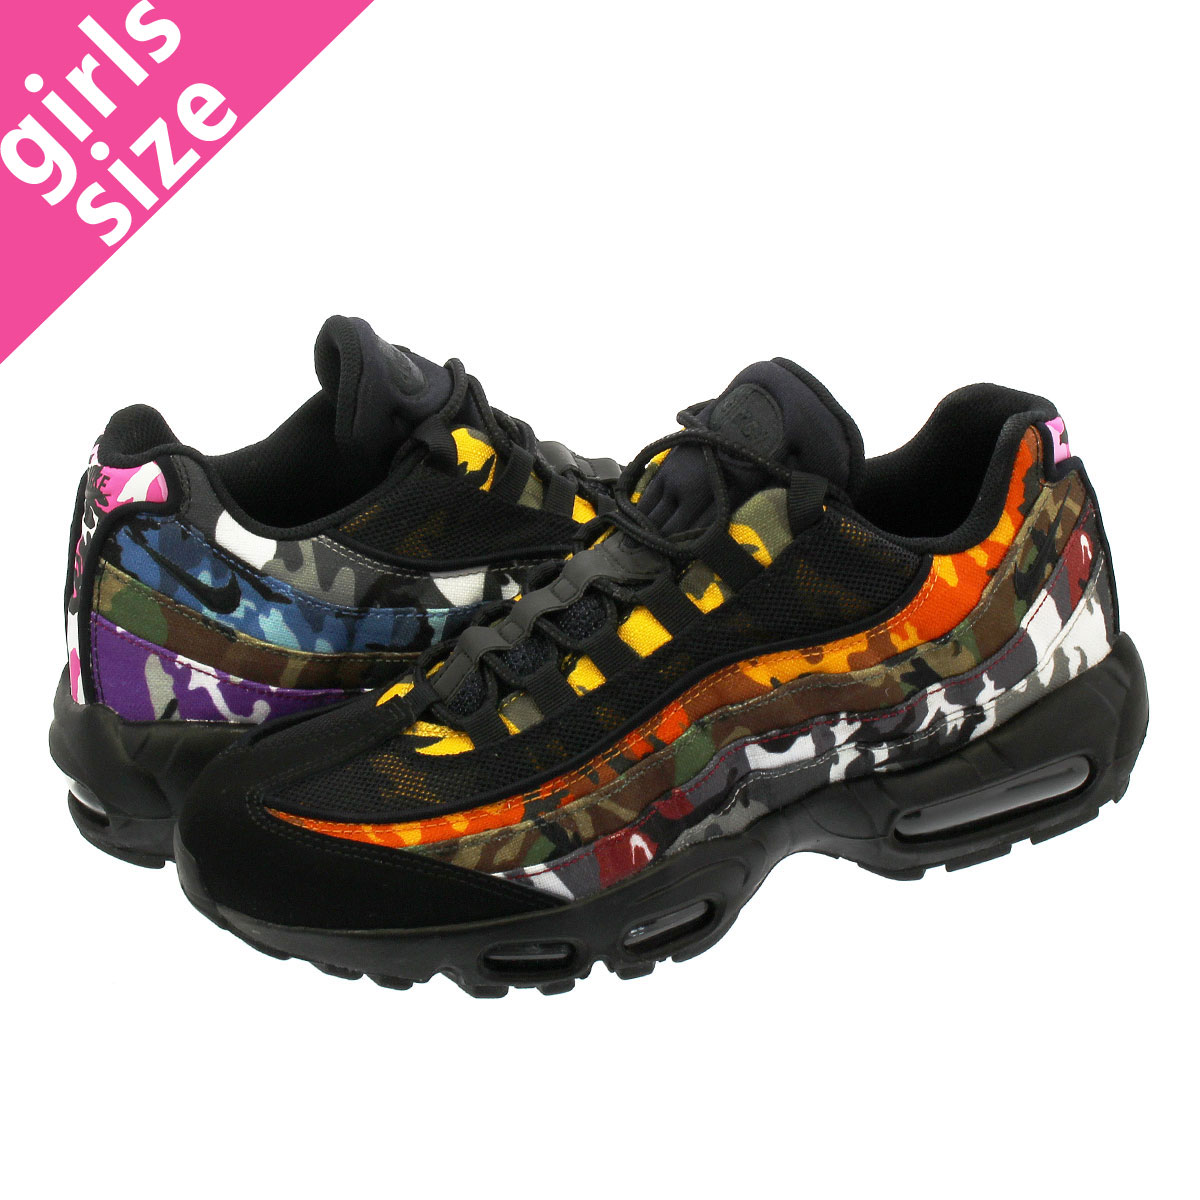 check out 38399 88340 NIKE AIR MAX 95 ERDL PARTY Kie Ney AMAX 95 BLACK/MULTI CAMO ar4473-001